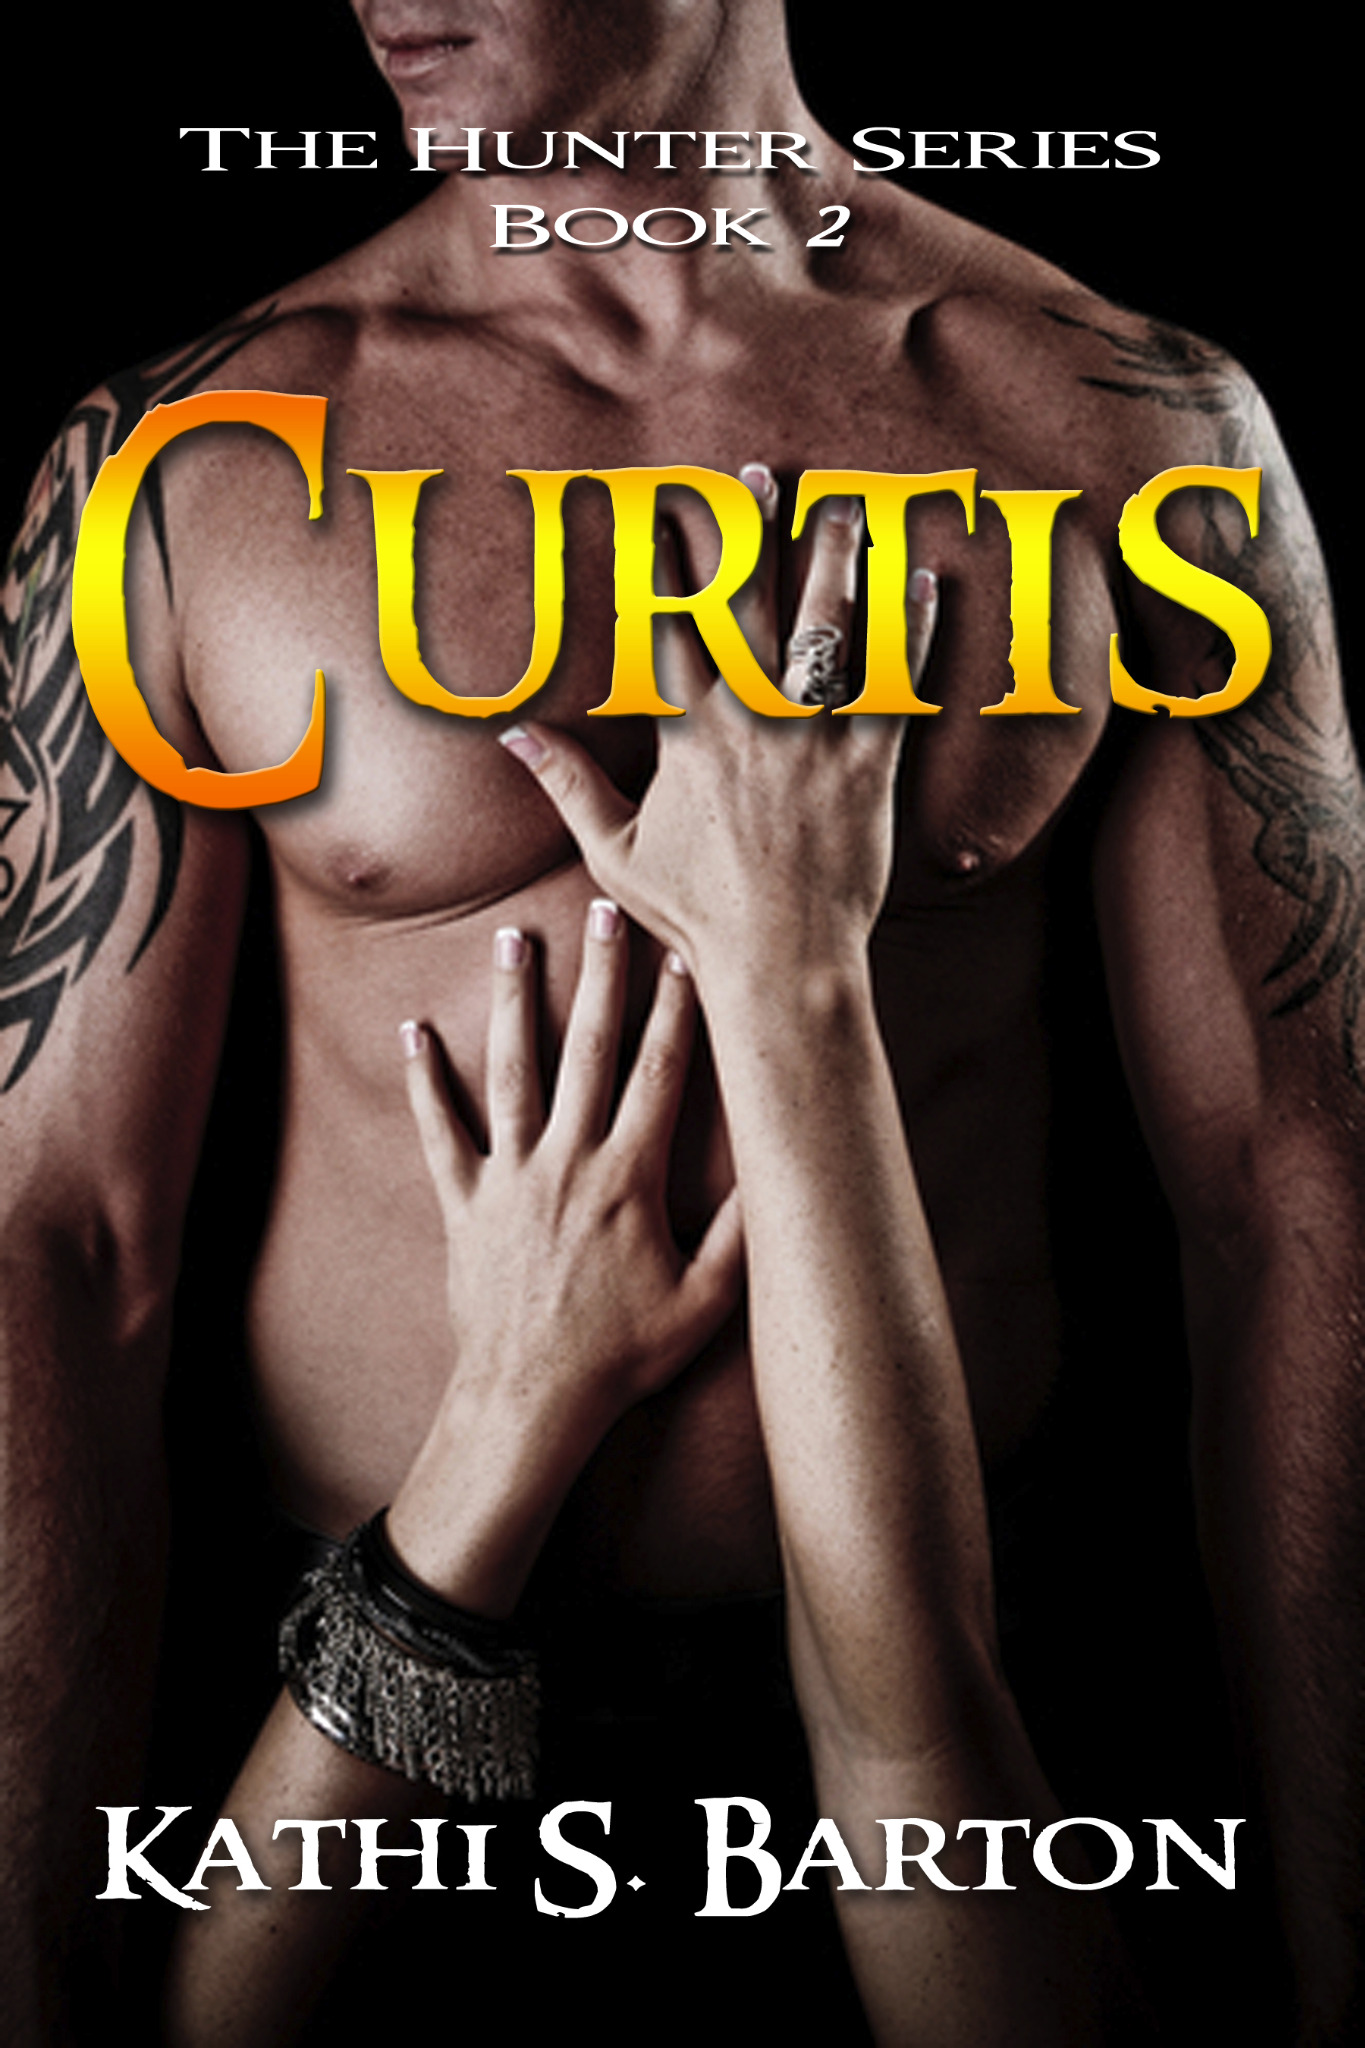 Curtis - The Hunter Series Book 2